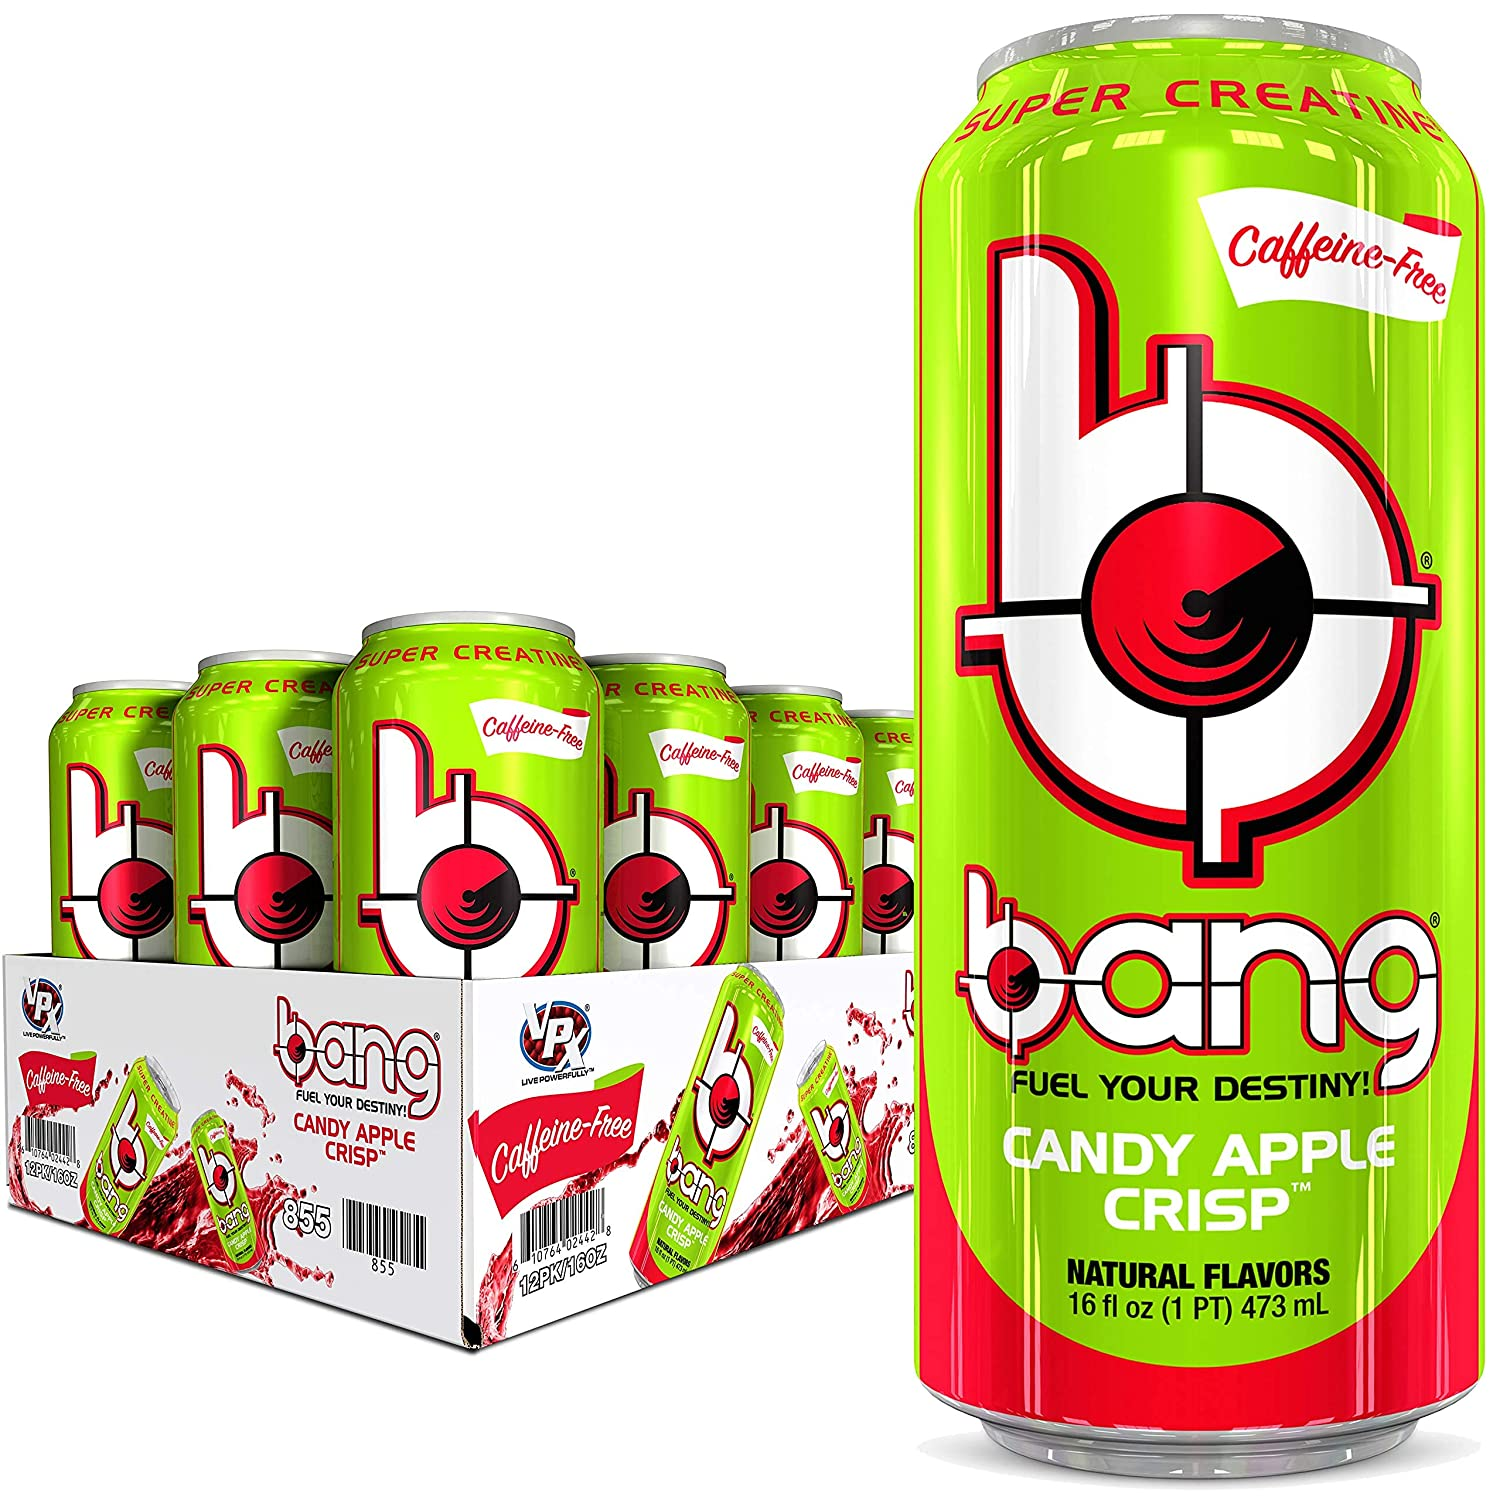 BANG Caffeine Free Financial sales sale Energy free shipping Drink 0 Sup Sugar Calories with